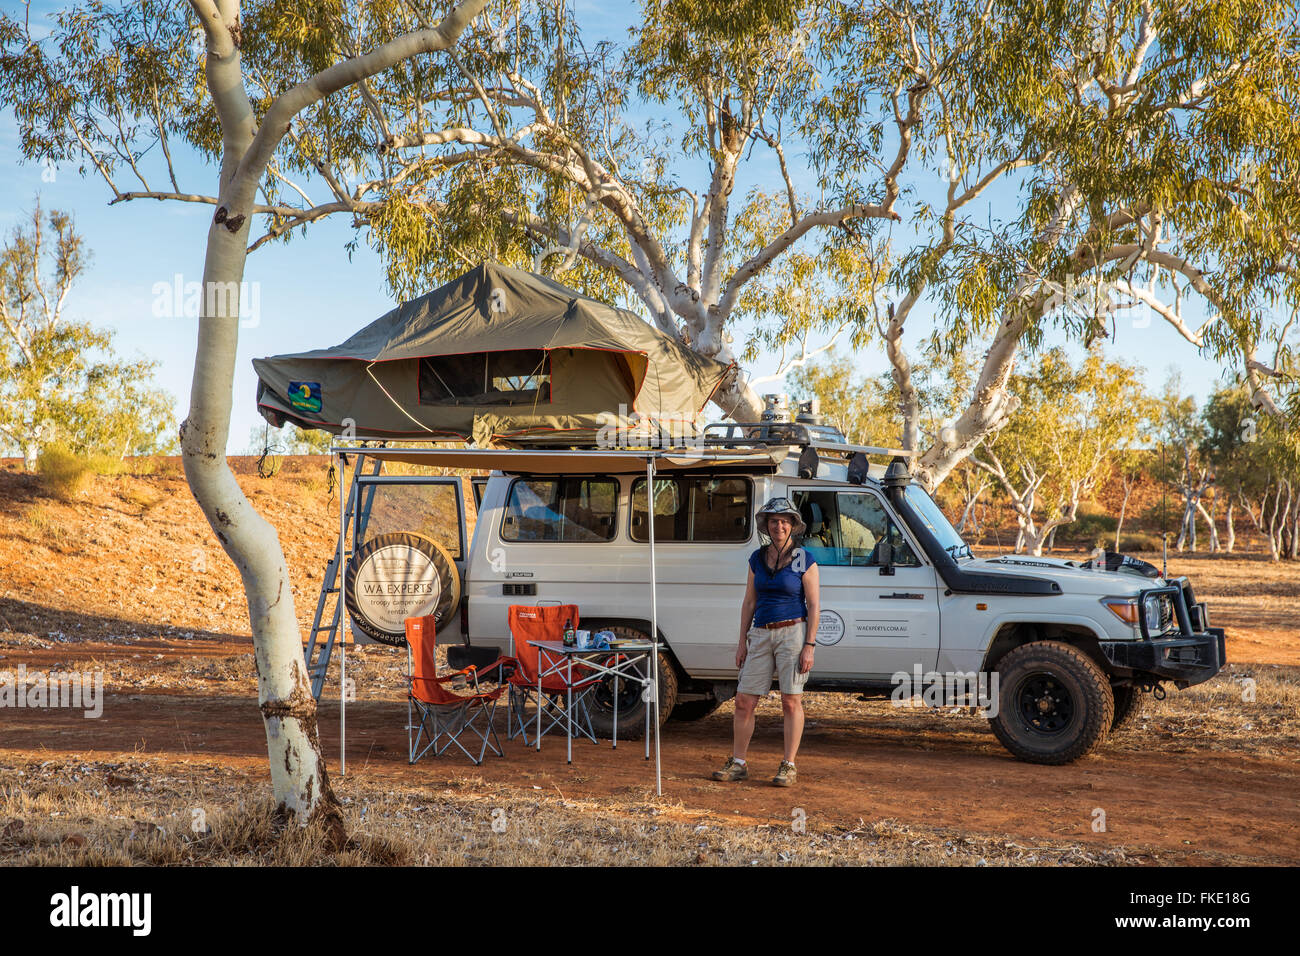 Wendy & the Troopy camping in the Outback, Western Australia - Stock Image